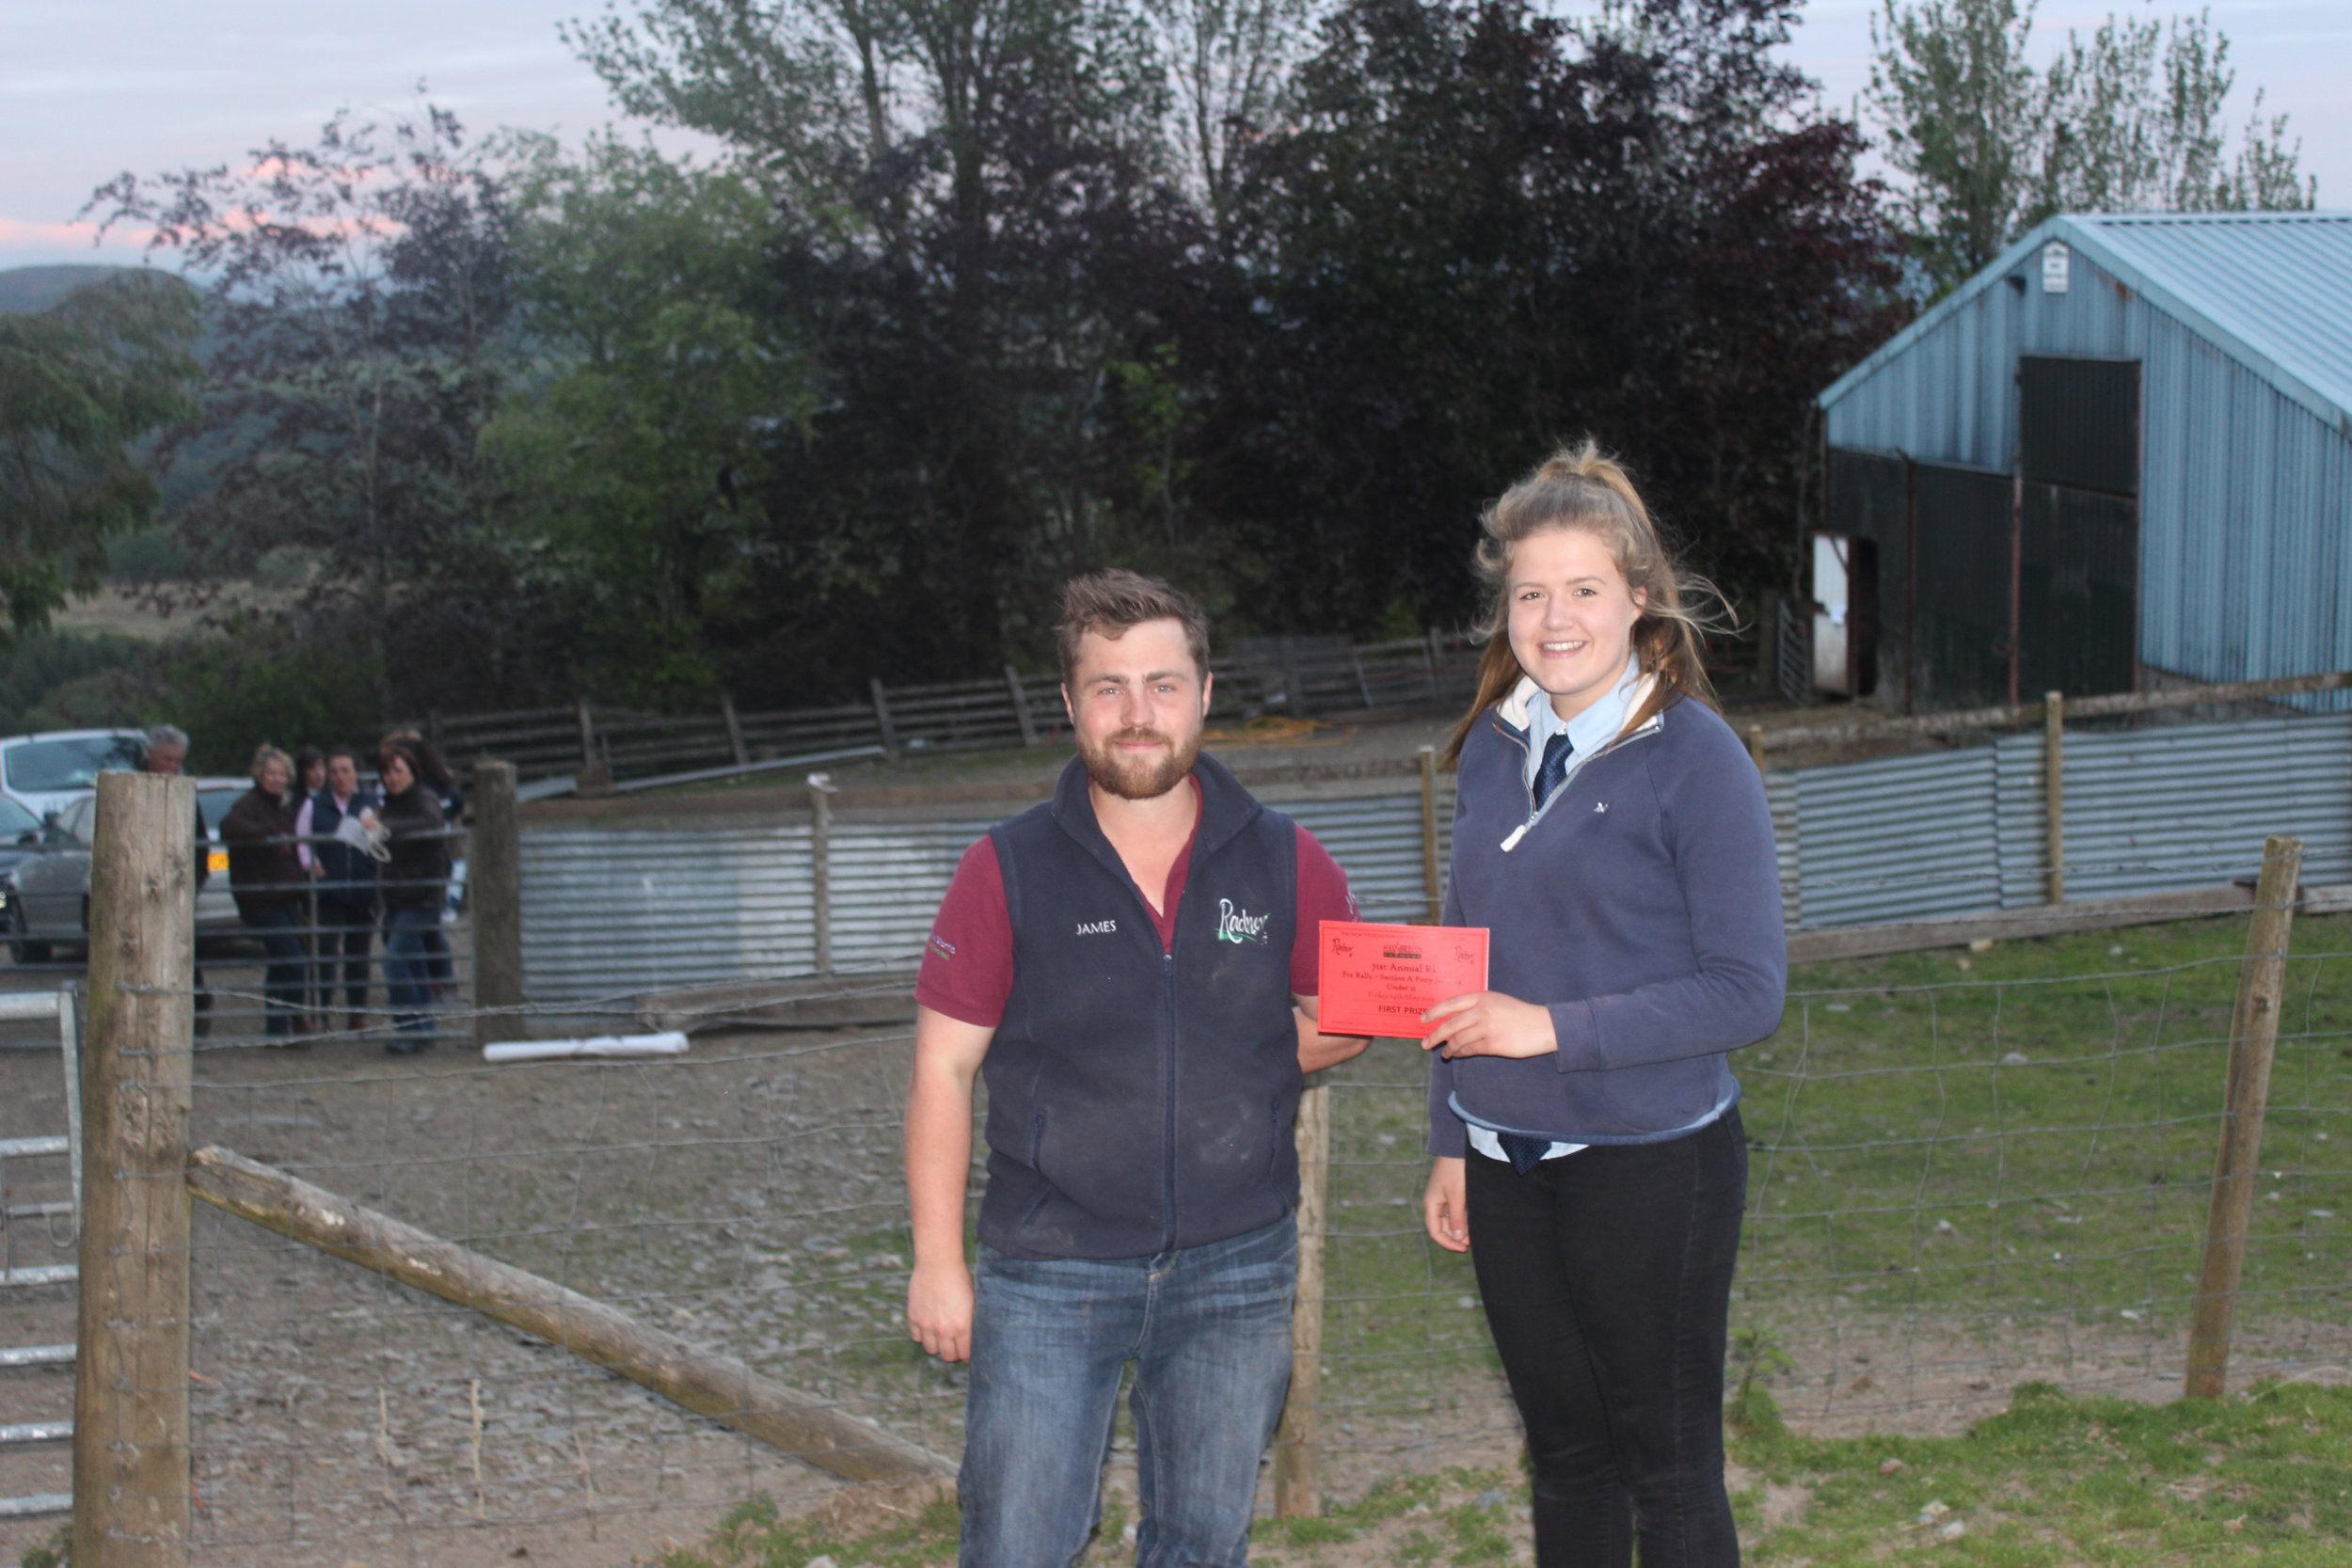 Gemma Price, Llanbadarn Fynydd YFC - 1st place in the Under 21 Section A Stockjudging with County Chairman James Poulton.